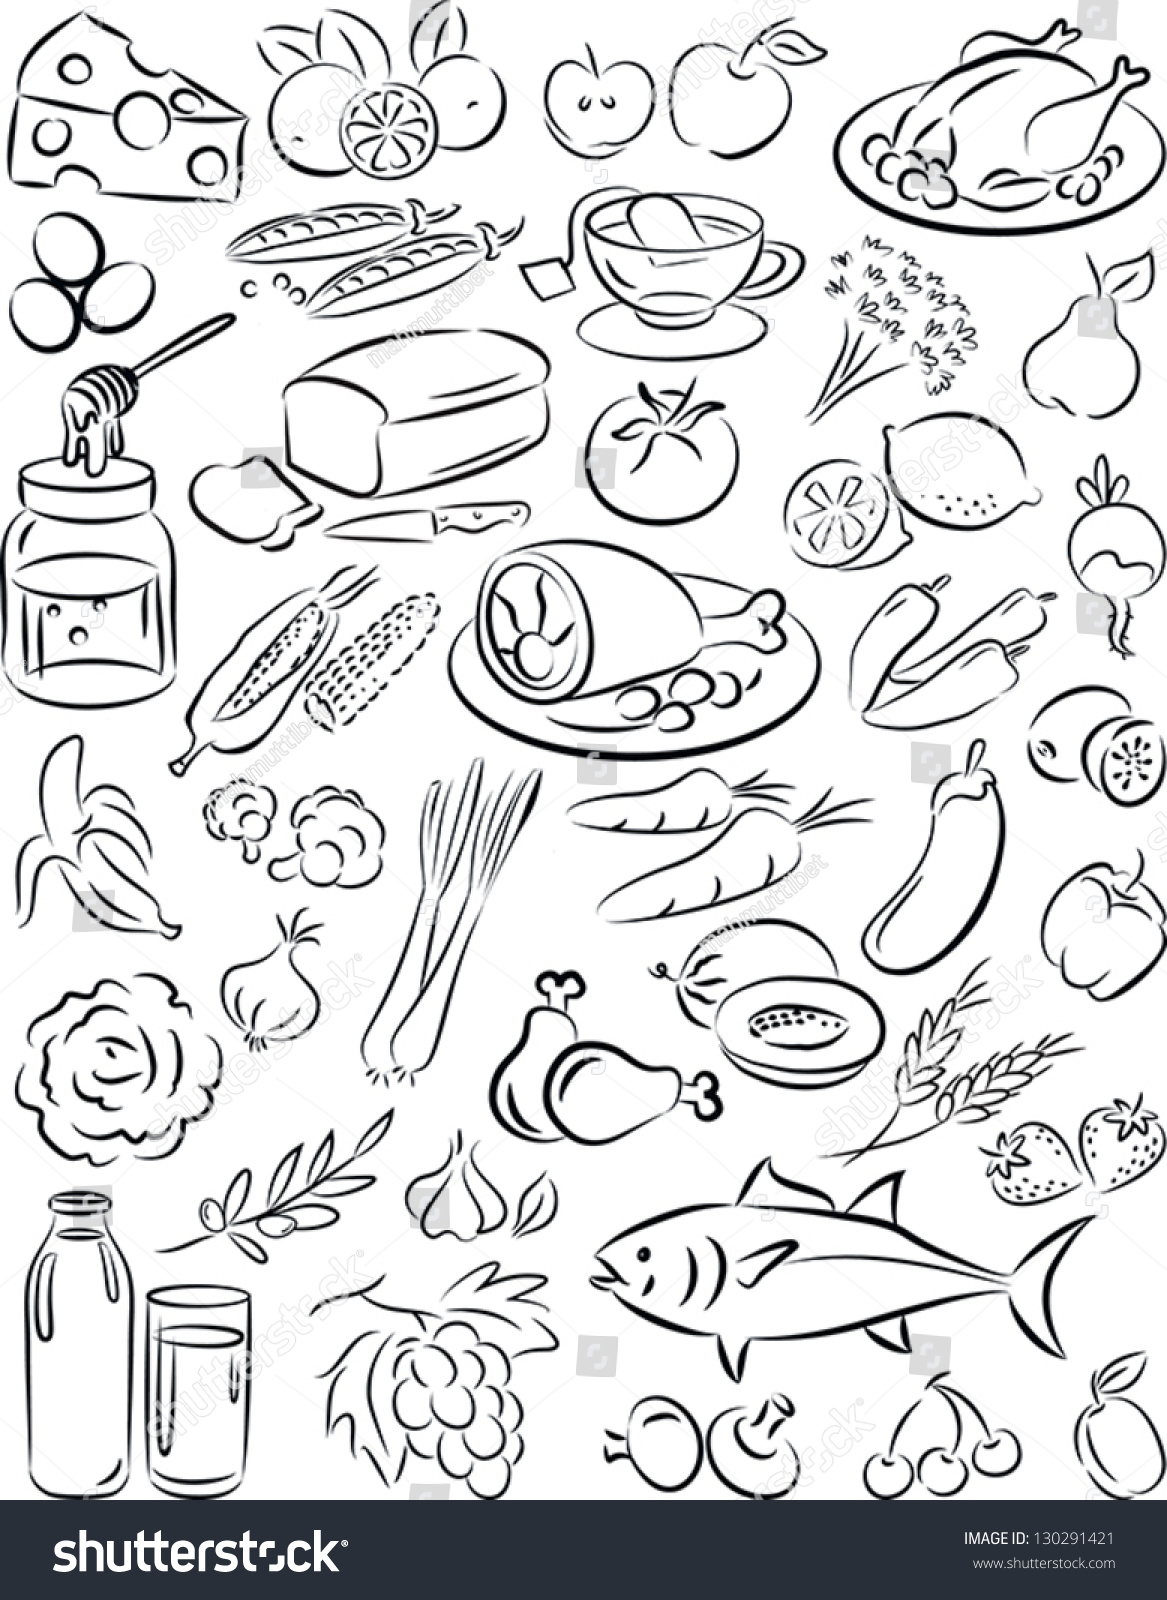 Healthy Foods Worksheet Black And White